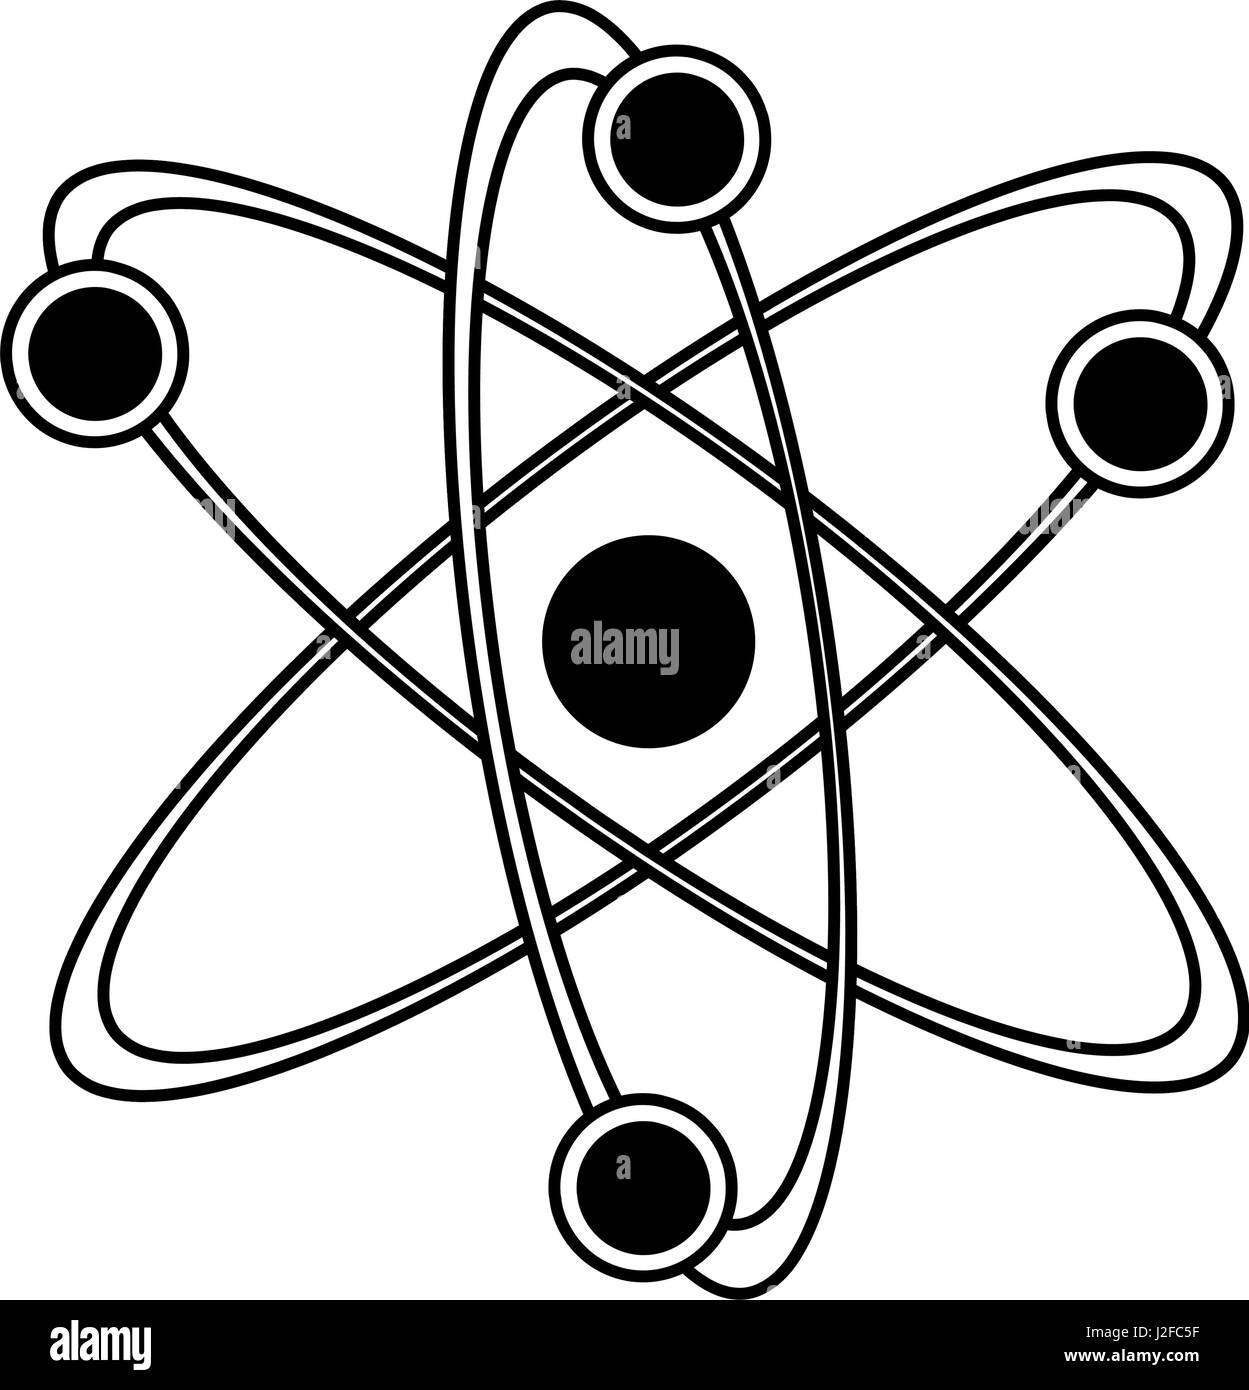 atom representation icon image  - Stock Image